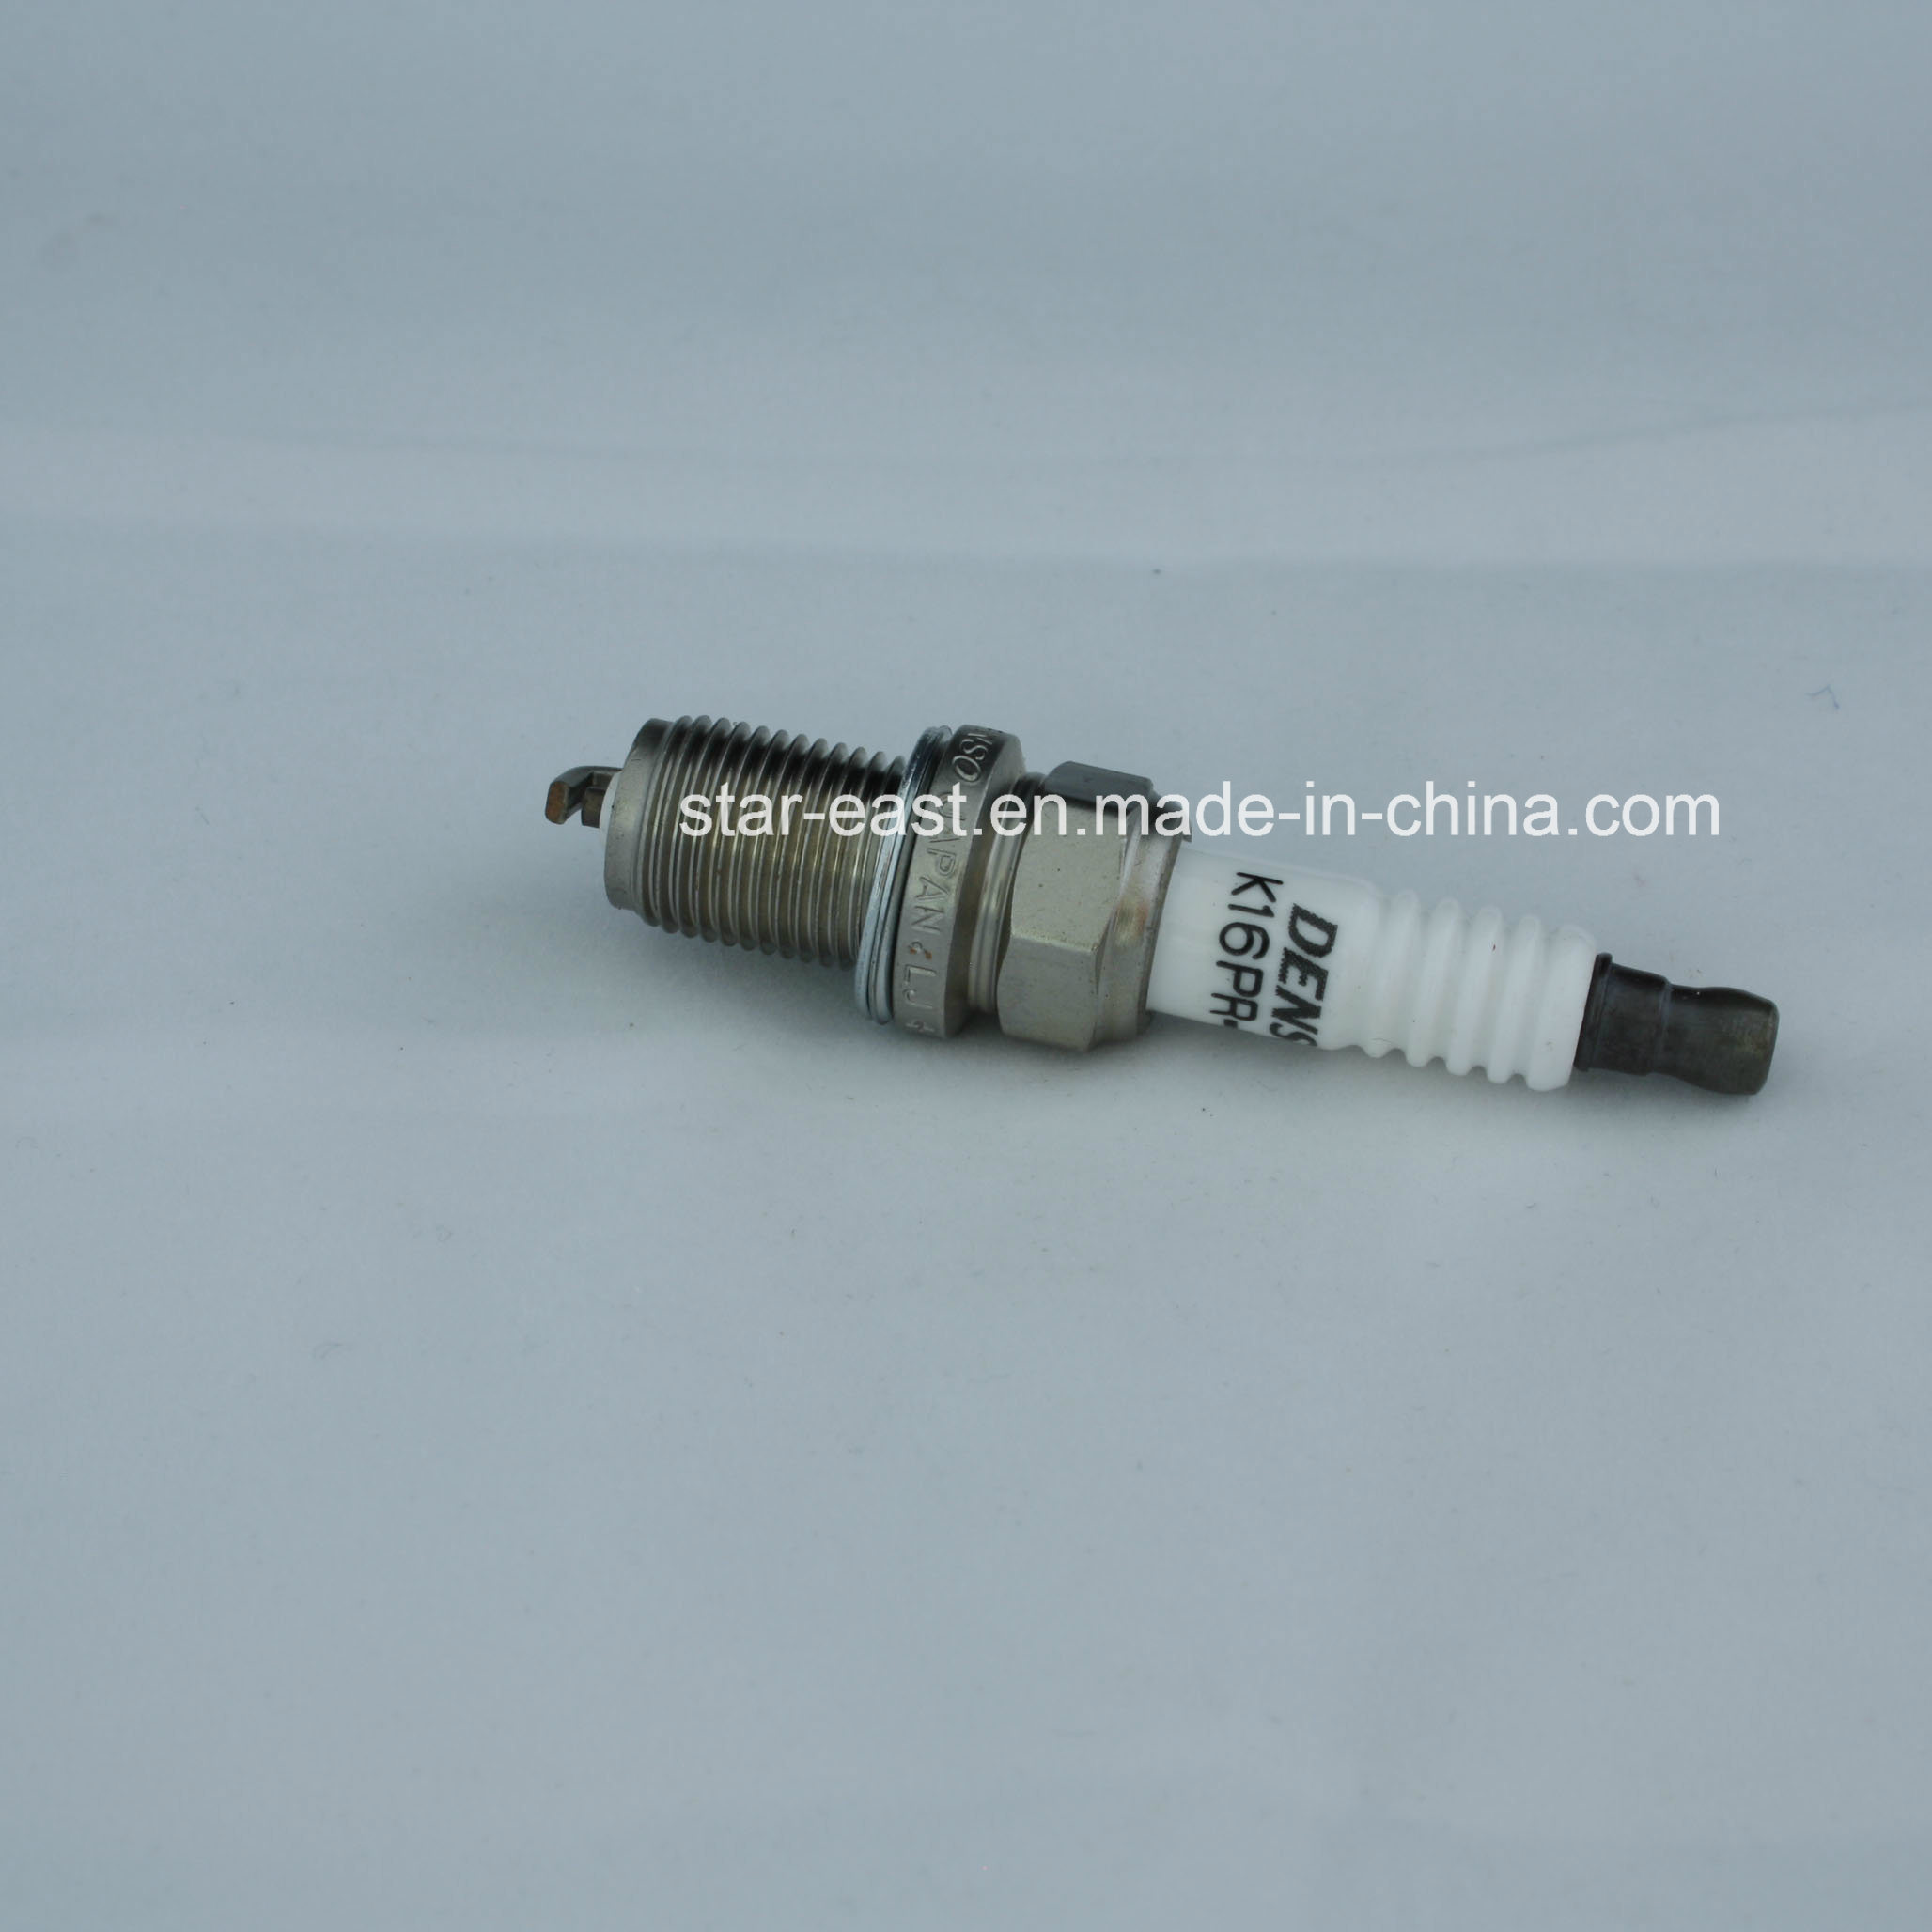 Hight Quality Spark Plug K16 for Denso Toyota/Nissan/Vw